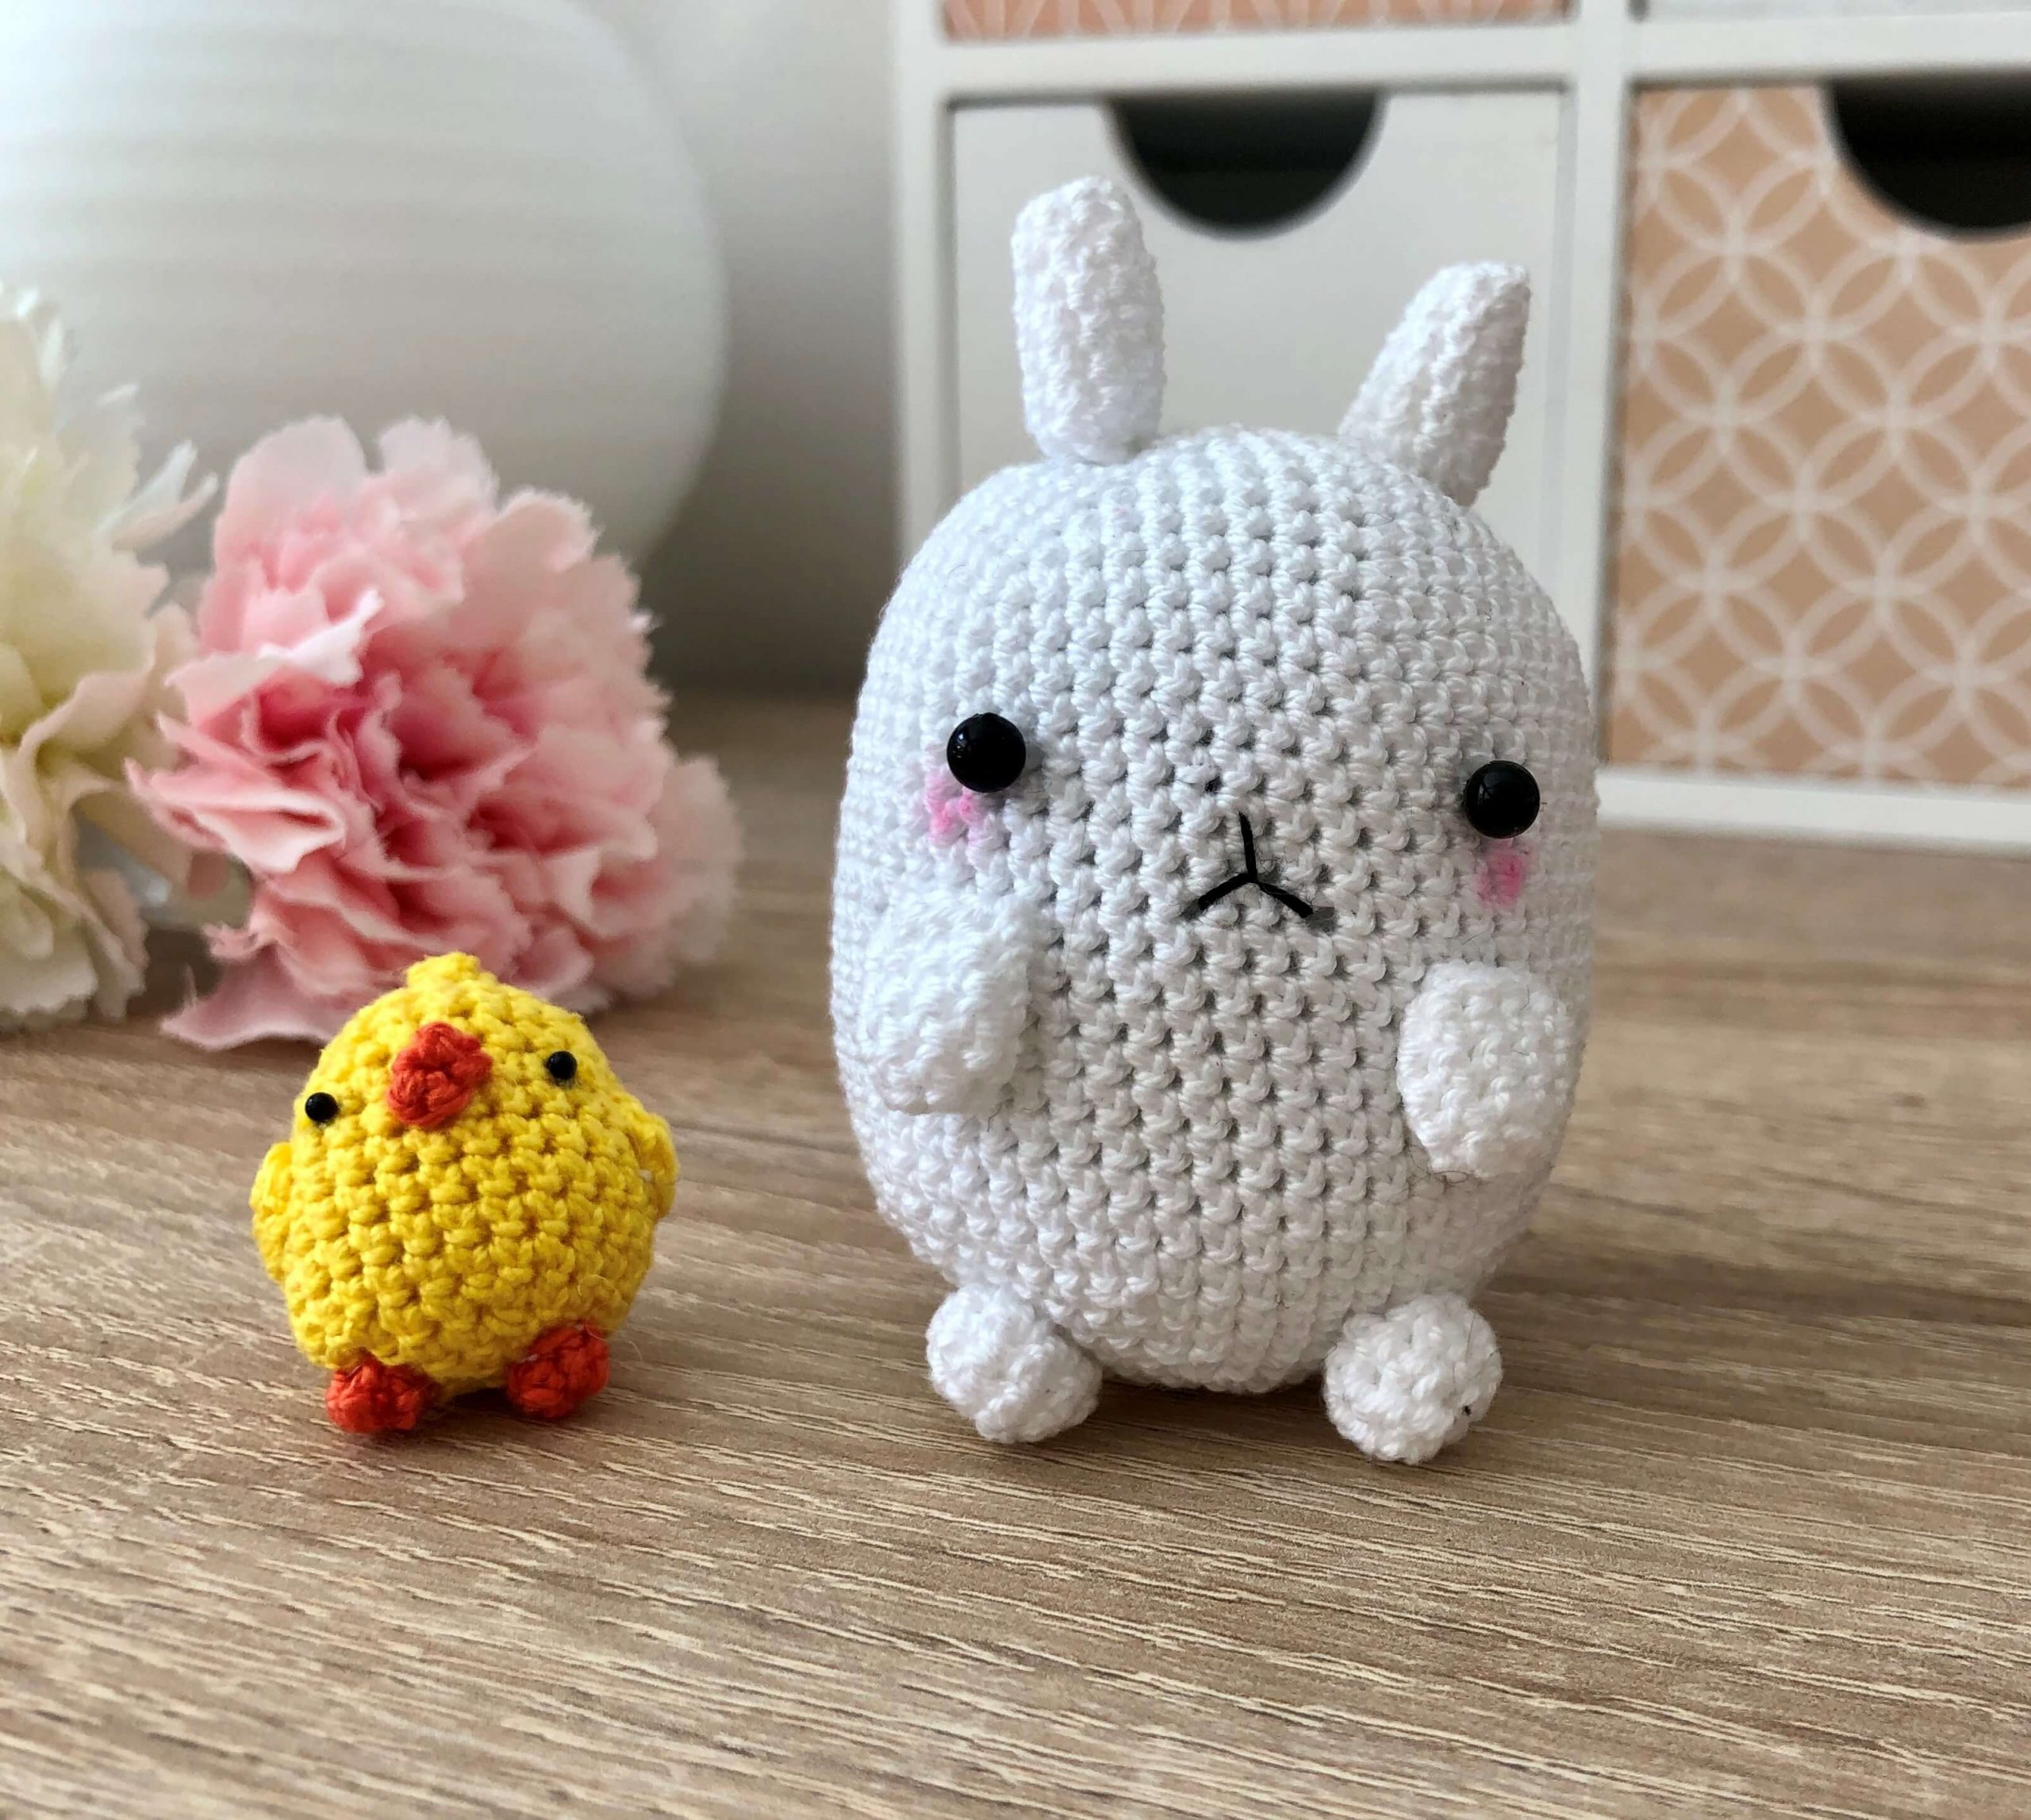 Molang cute Hand made Hand-knitted Doll collaboration - Molang and ... | 2294x2560